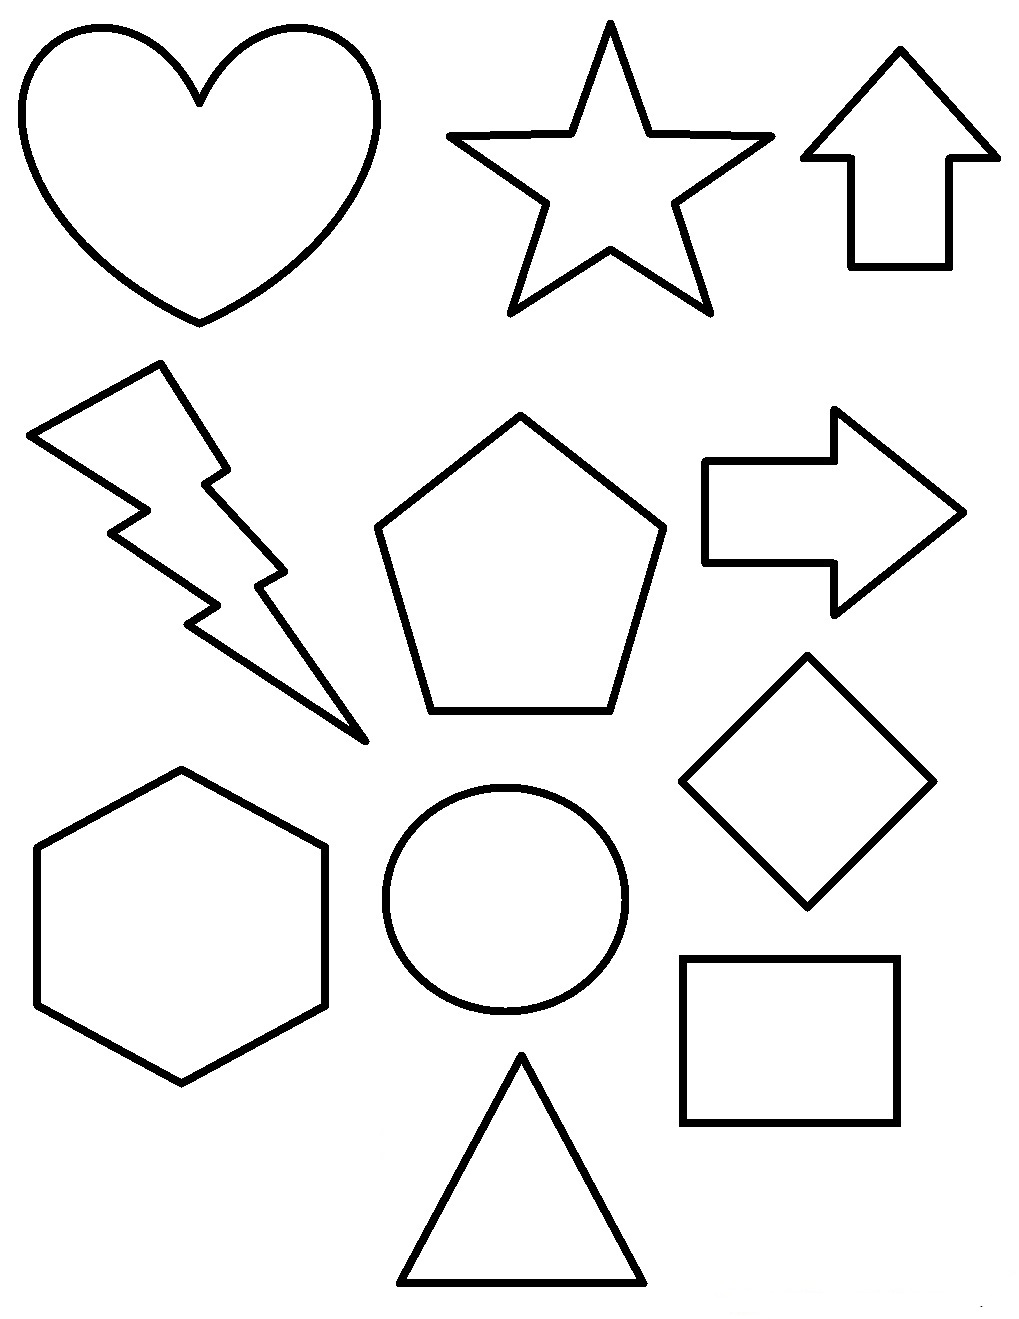 coloring sheet with shapes geometric shapes cartoon coloring page shapes coloring sheet with